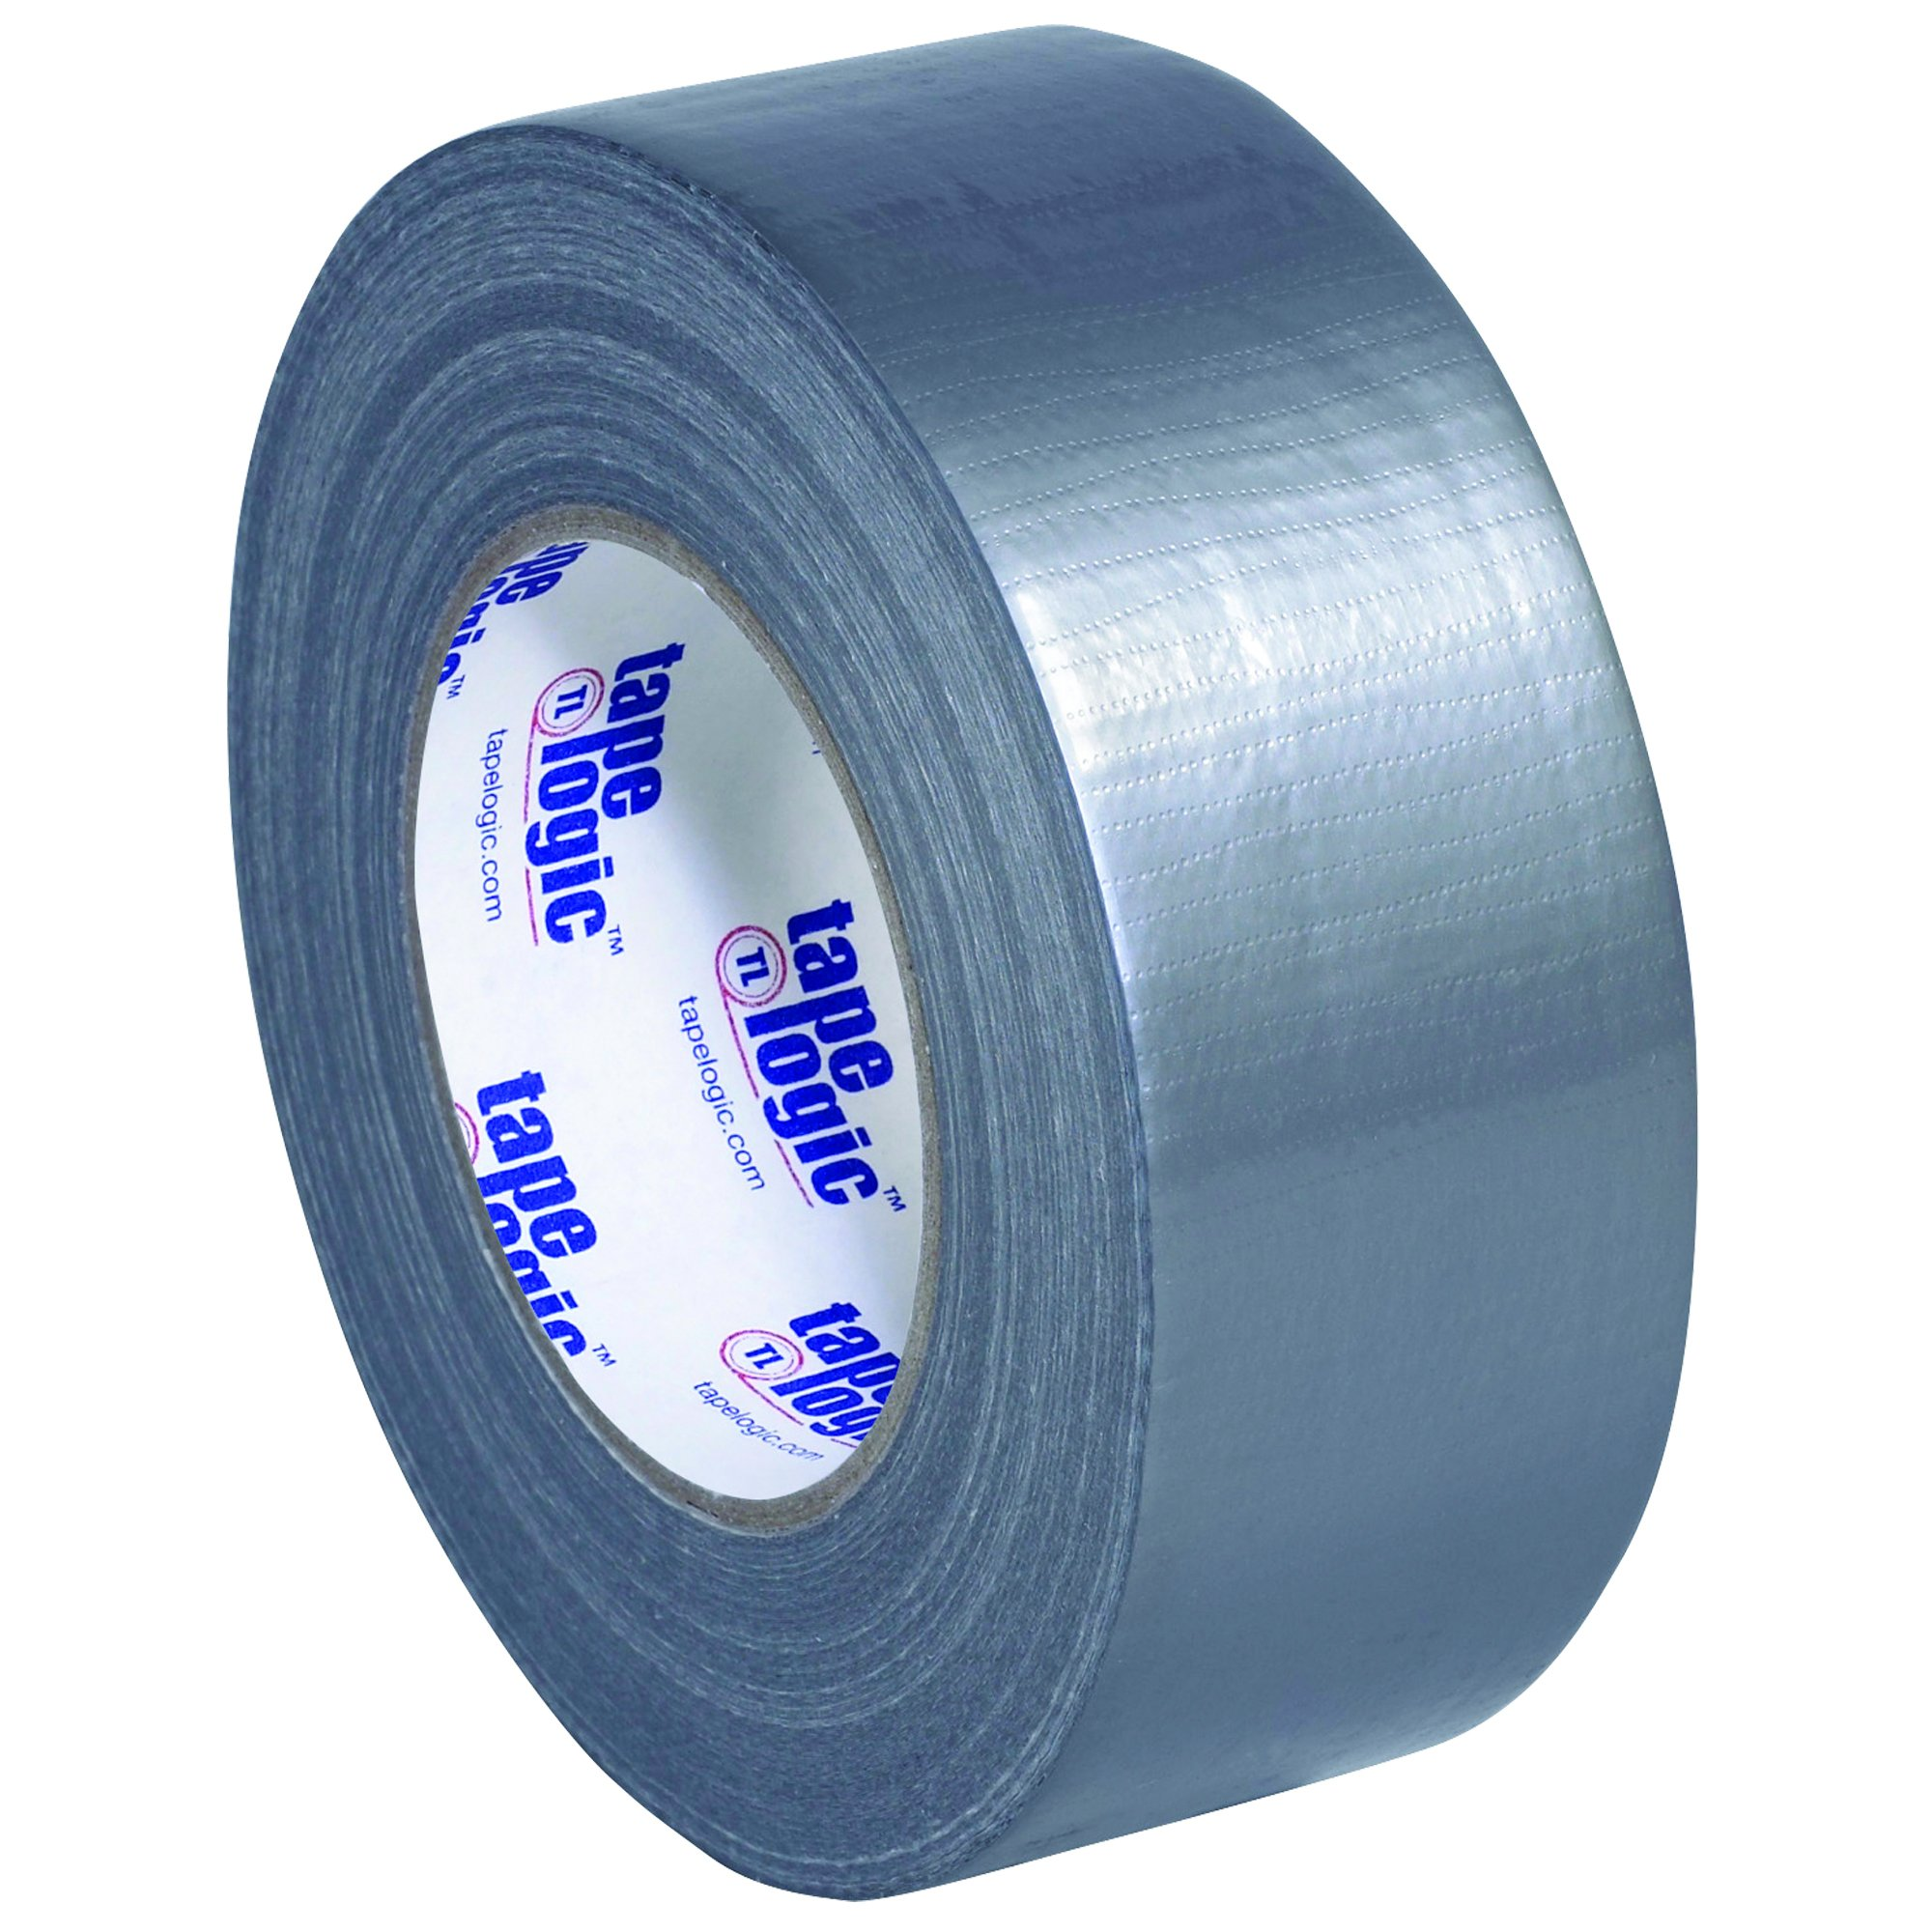 BOX USA BT98785S Silver Tape Logic Duct Tape, 9 mil, 2'' x 60 yd. (Pack of 24)